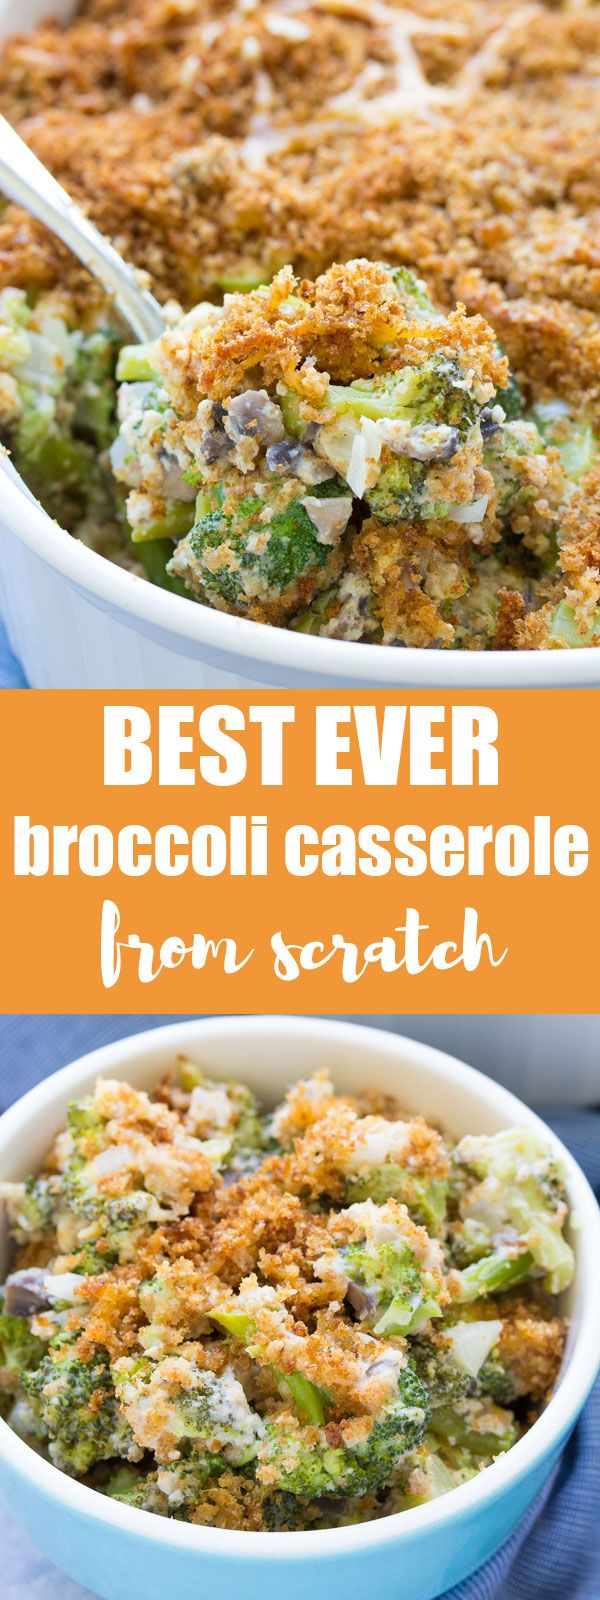 This best ever broccoli casserole from scratch is filled with fresh broccoli, mushrooms, cheddar cheese, and a homemade cream sauce. With a buttery, cheesy breadcrumb topping! This healthier broccoli casserole is made without mayonnaise!